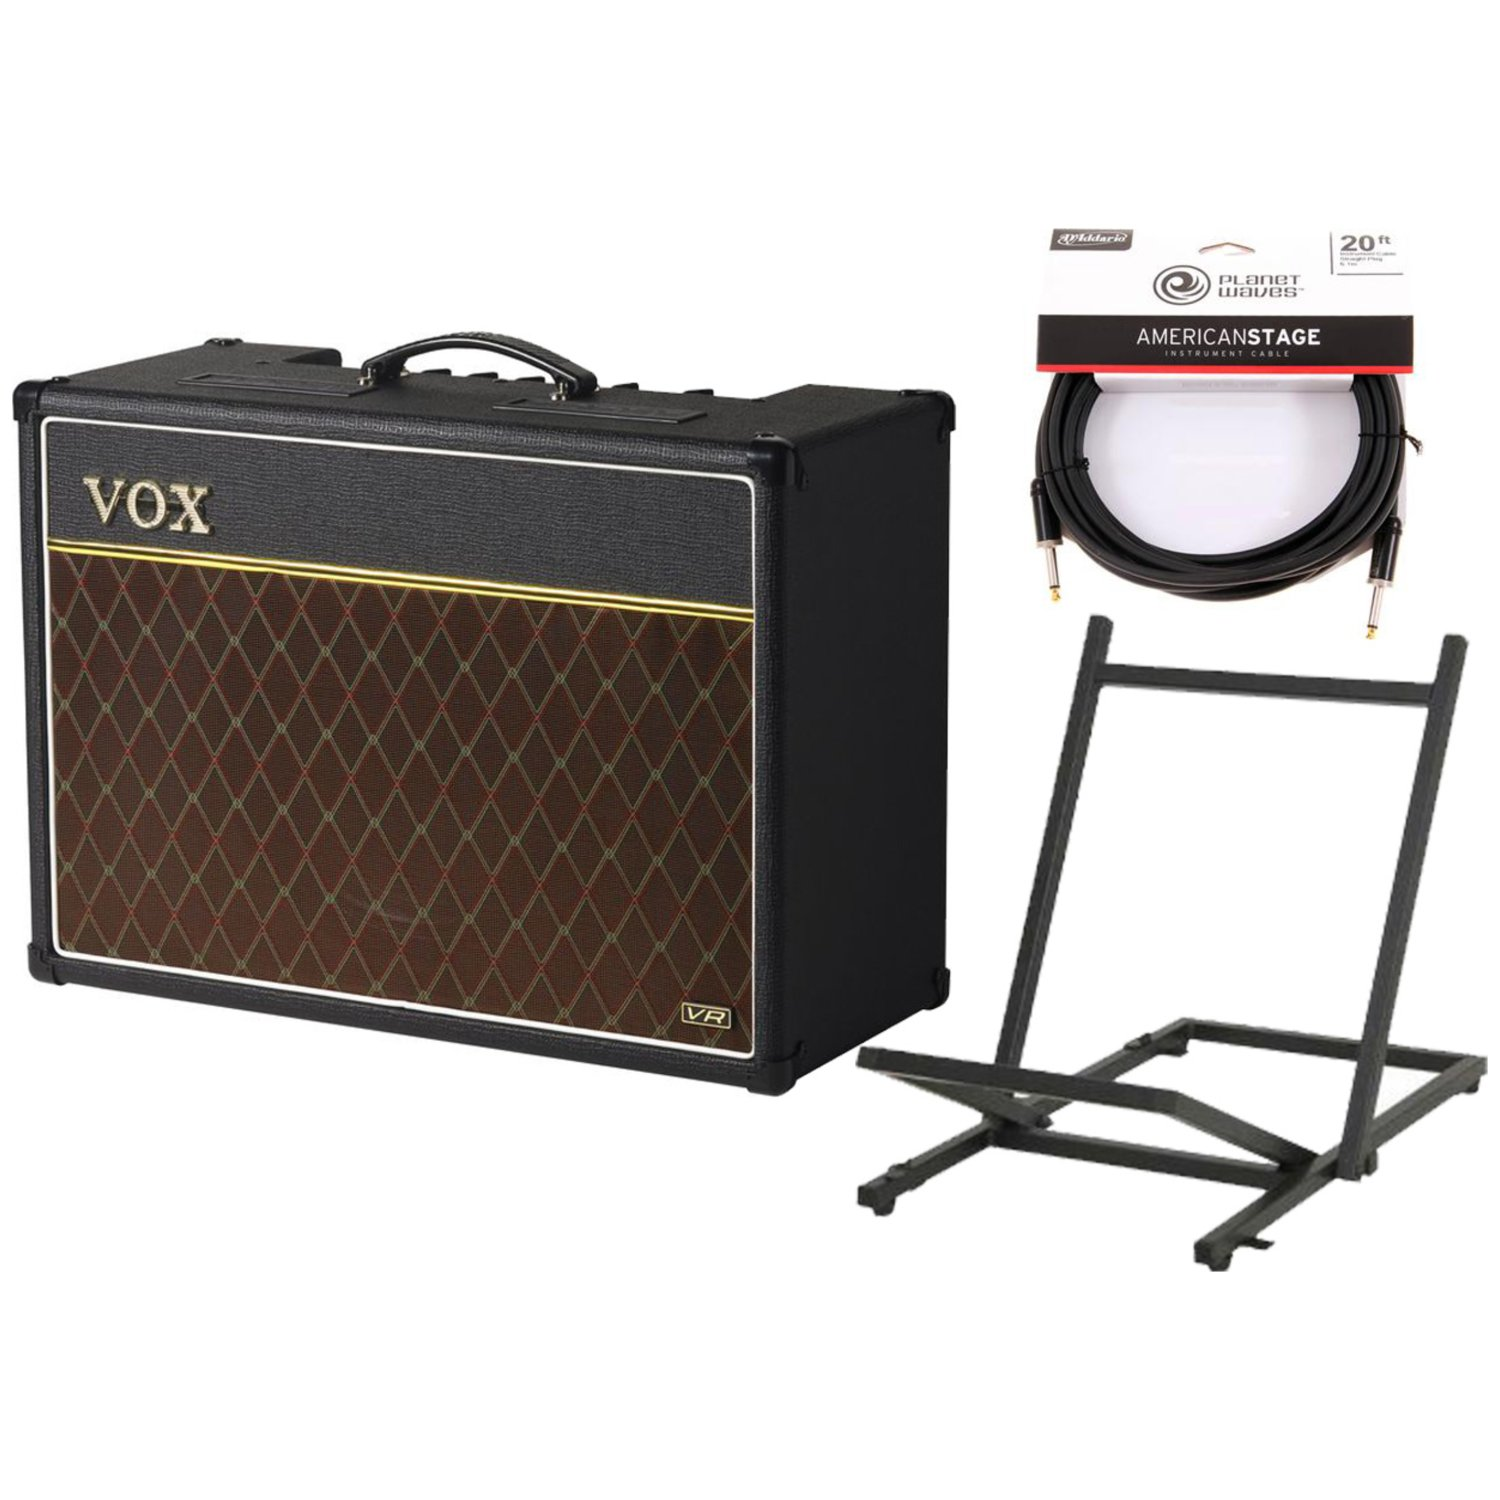 Vox AC15VR Valve Reactor 1x12 Guitar Combo Amp w/20' Instrument Cable and Amp Stand